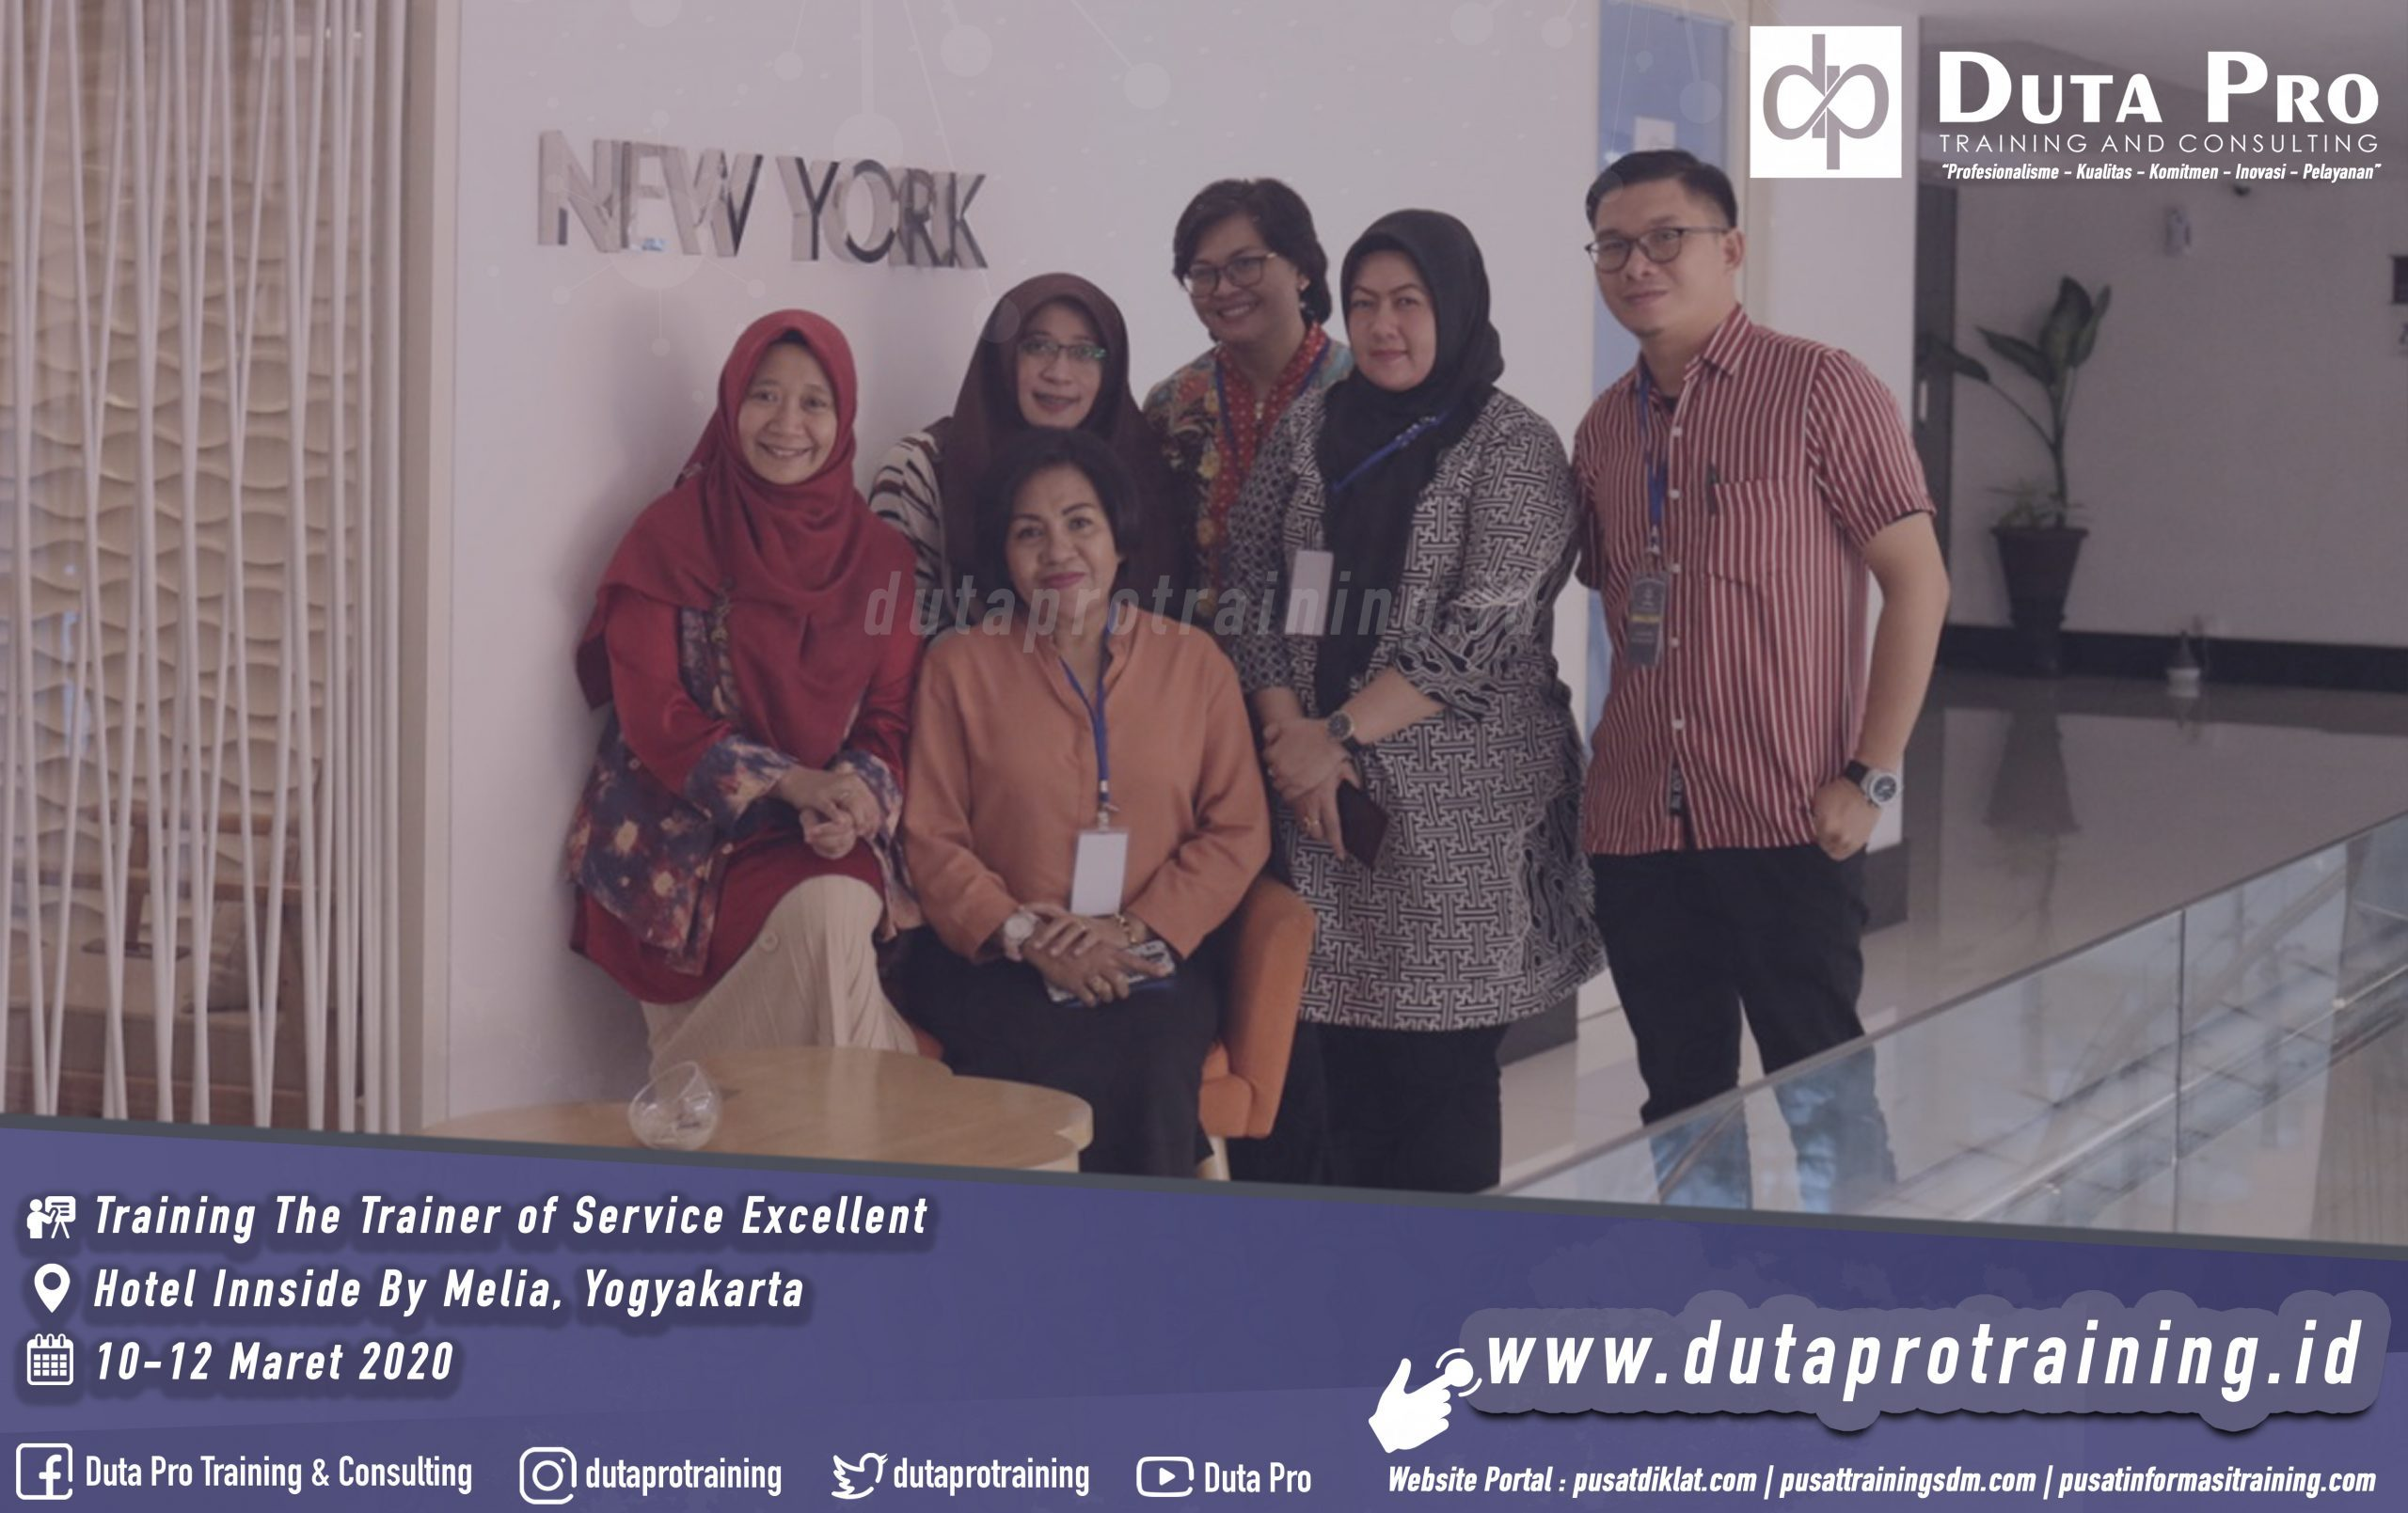 Training The Trainer of Service Excellent Hotel jogja duta pro. Galeri Website scaled 2559x1609 - Training Job Analysis and Evaluation